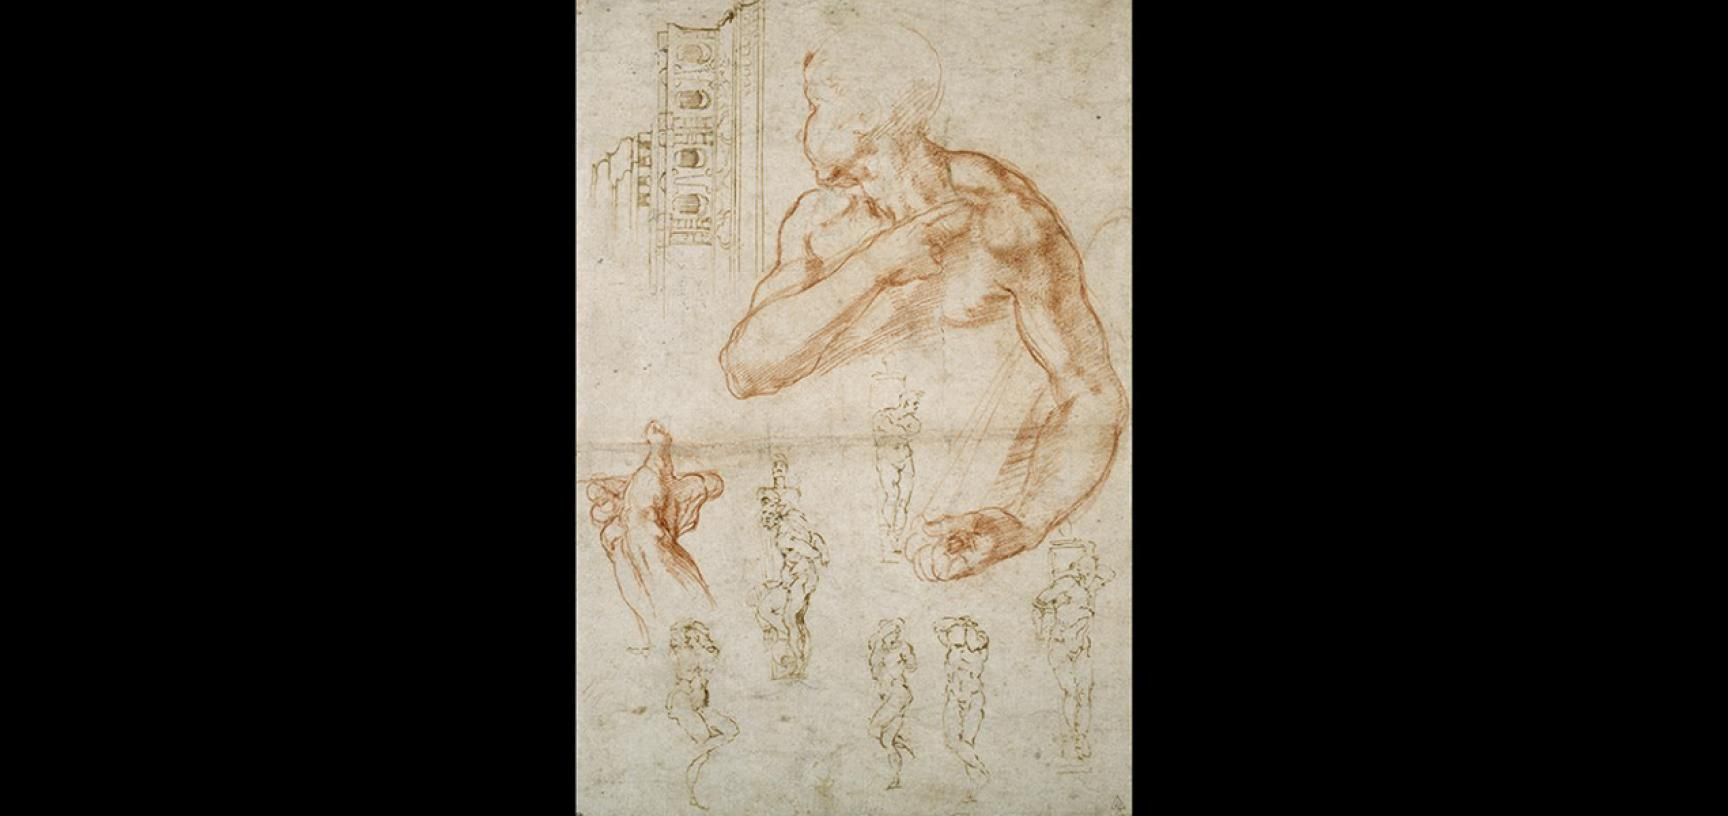 Michelangelo's studies by Michelangelo Buonarroti